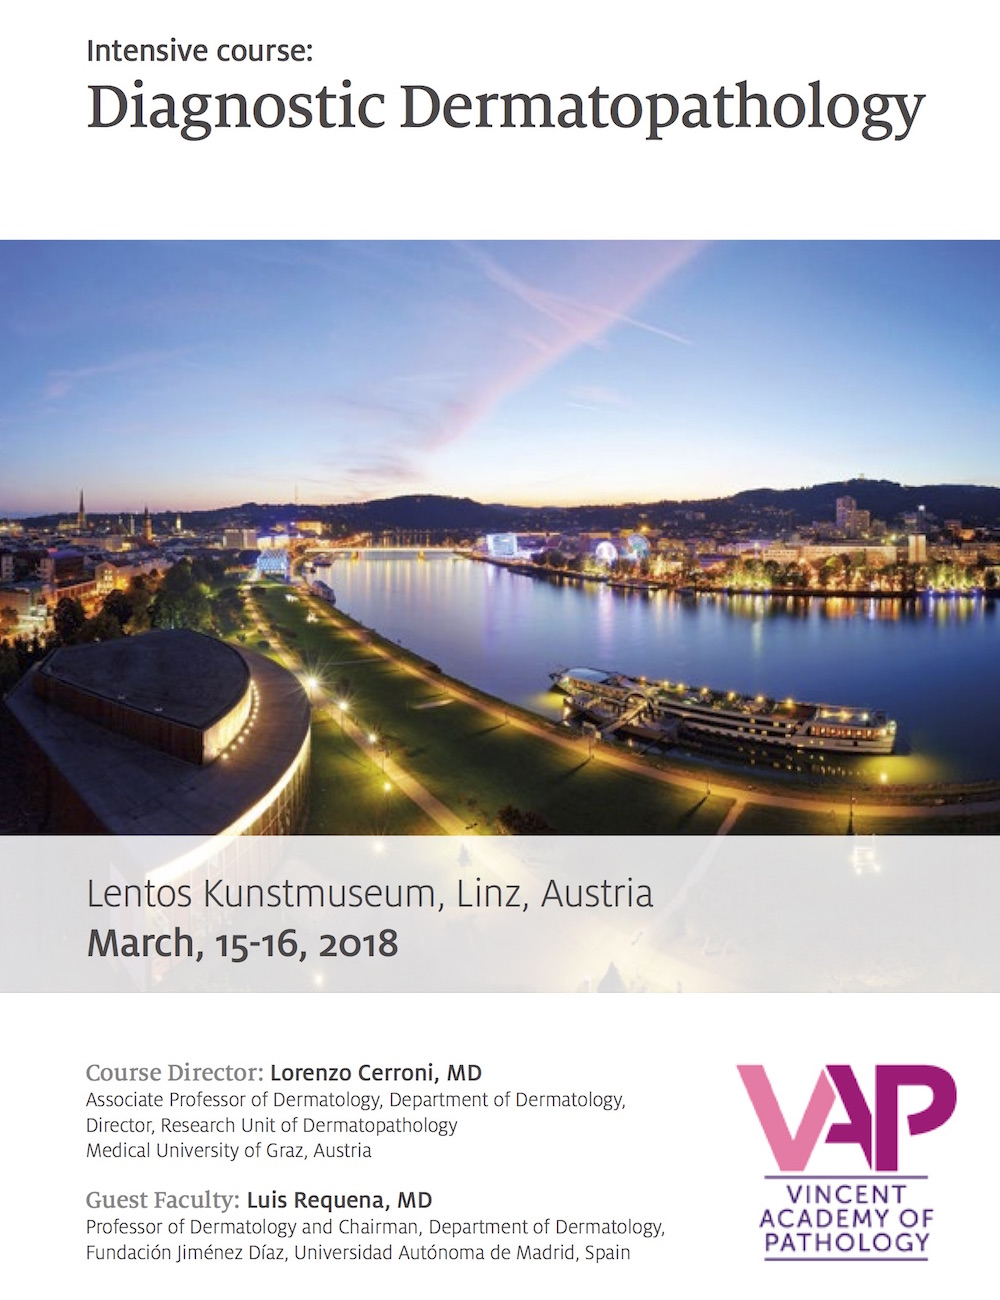 Pathology Outlines - Conferences / Webinars as of March 1, 2018